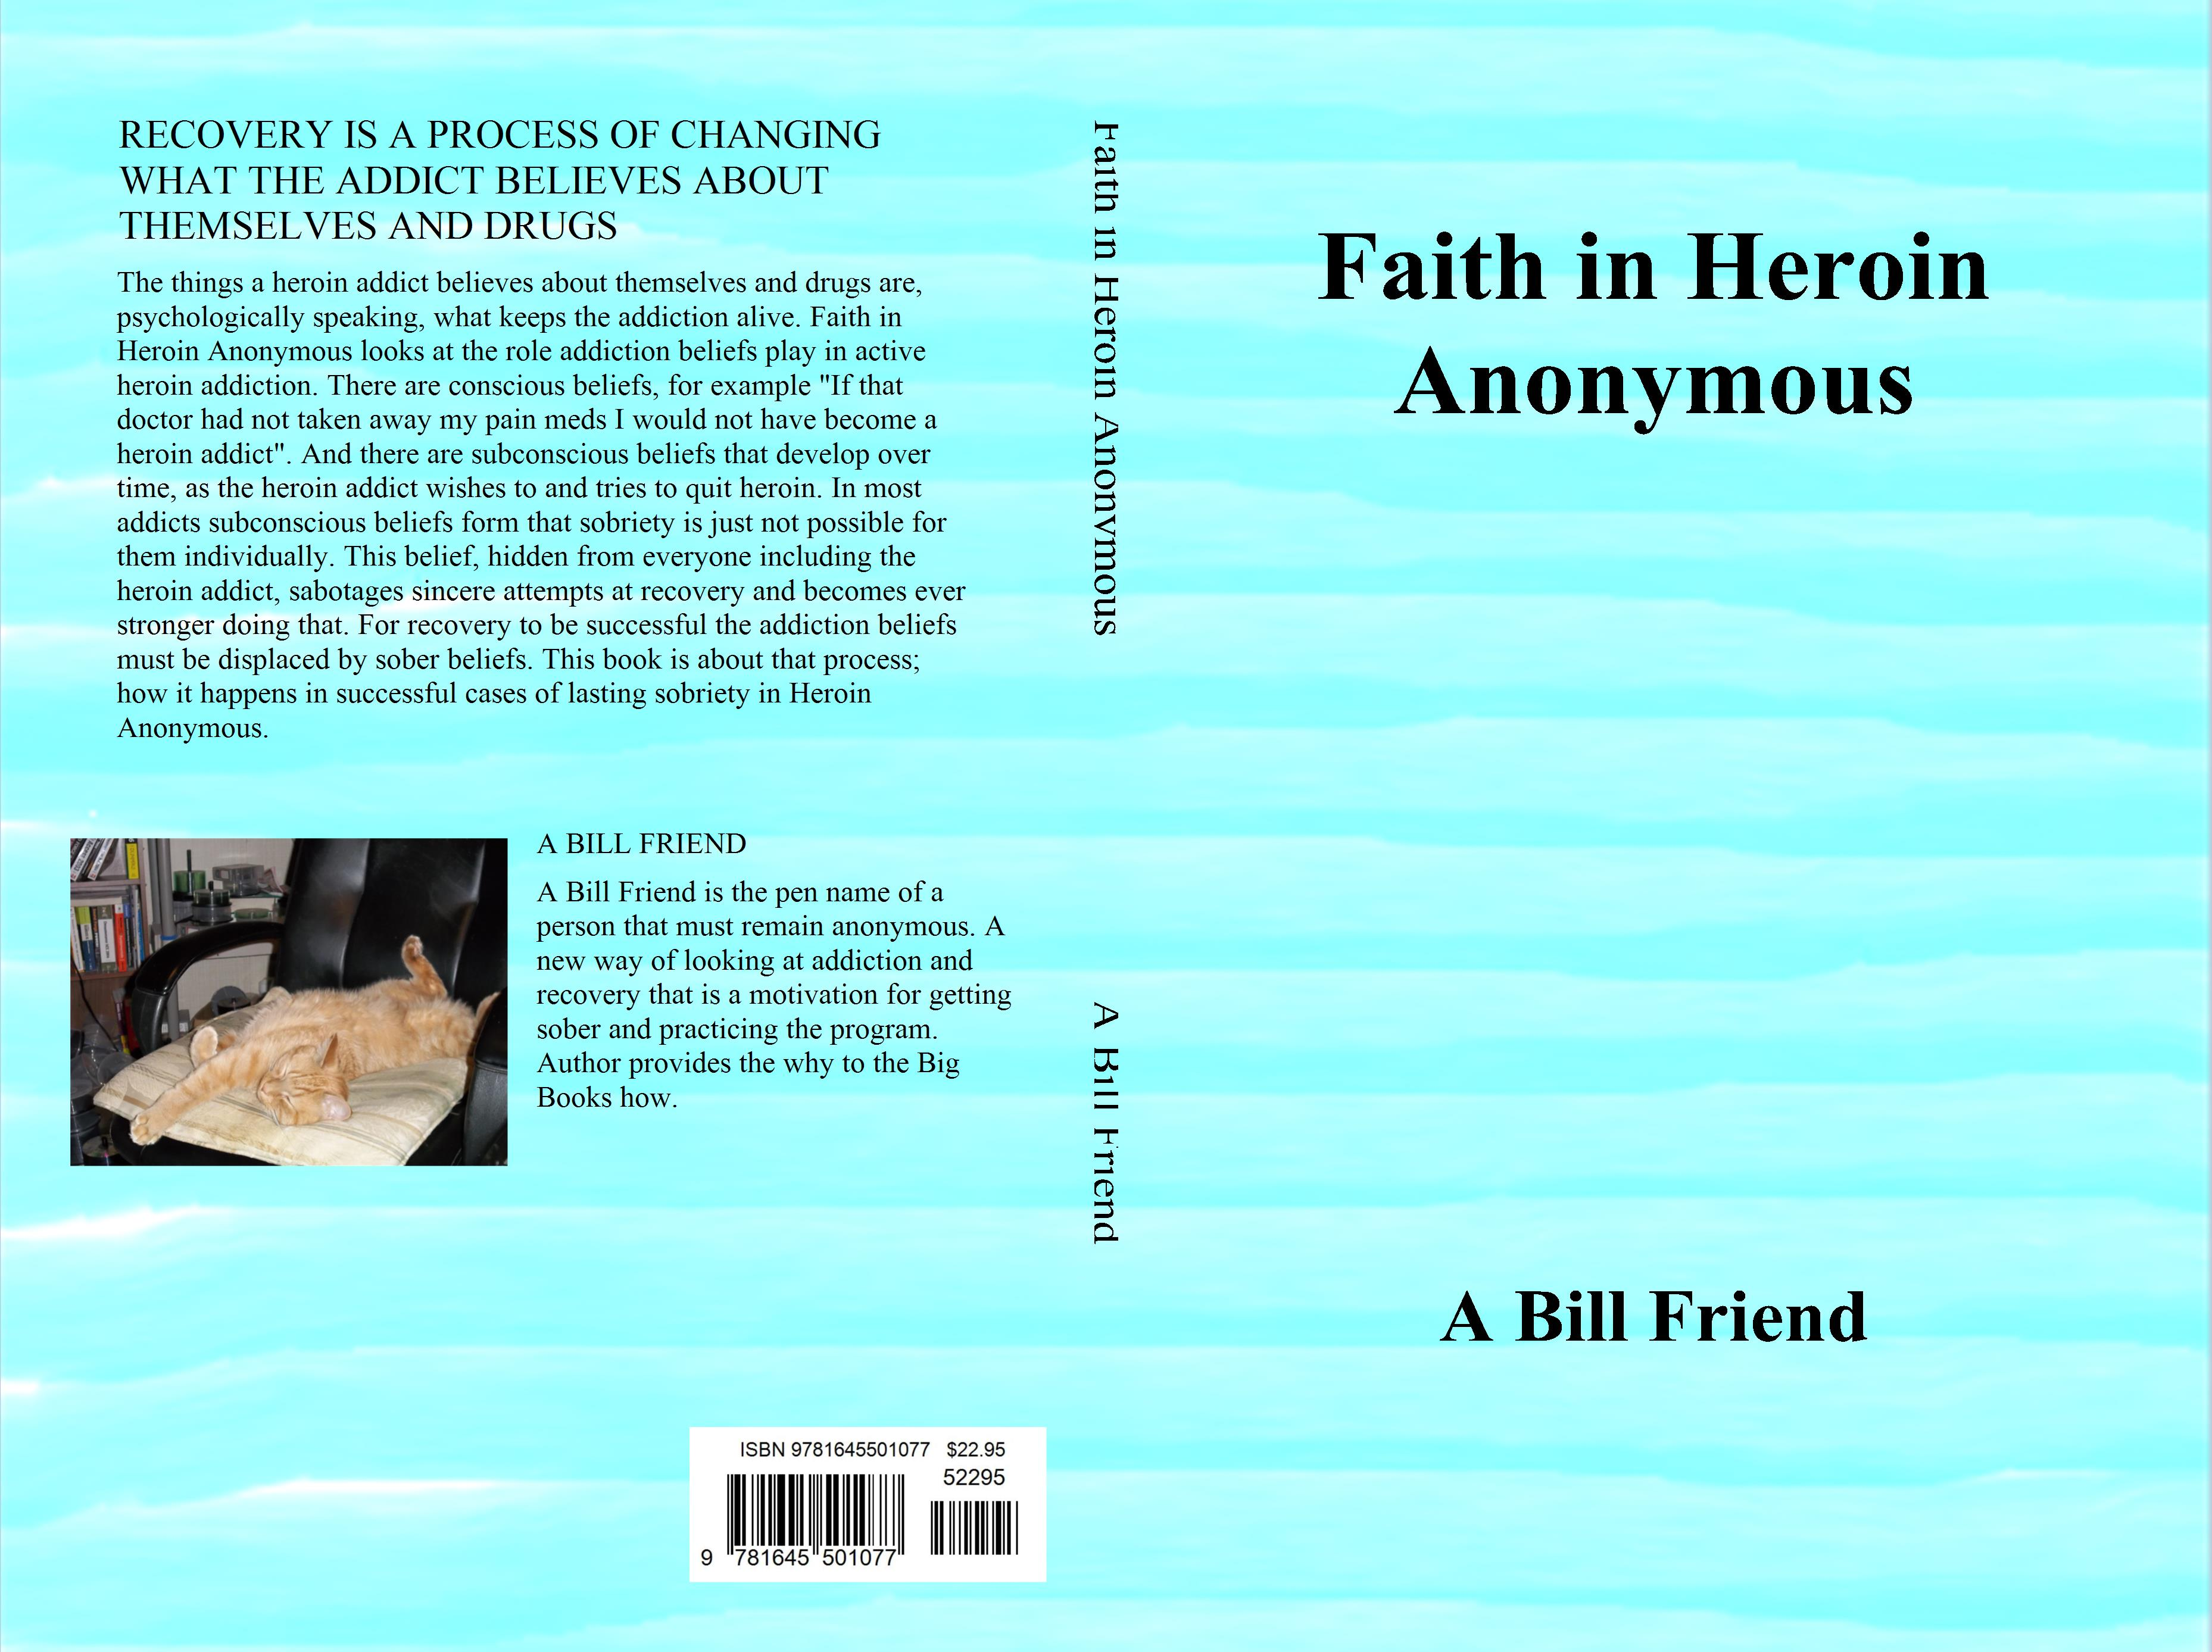 Faith in Heroin Anonymous cover image